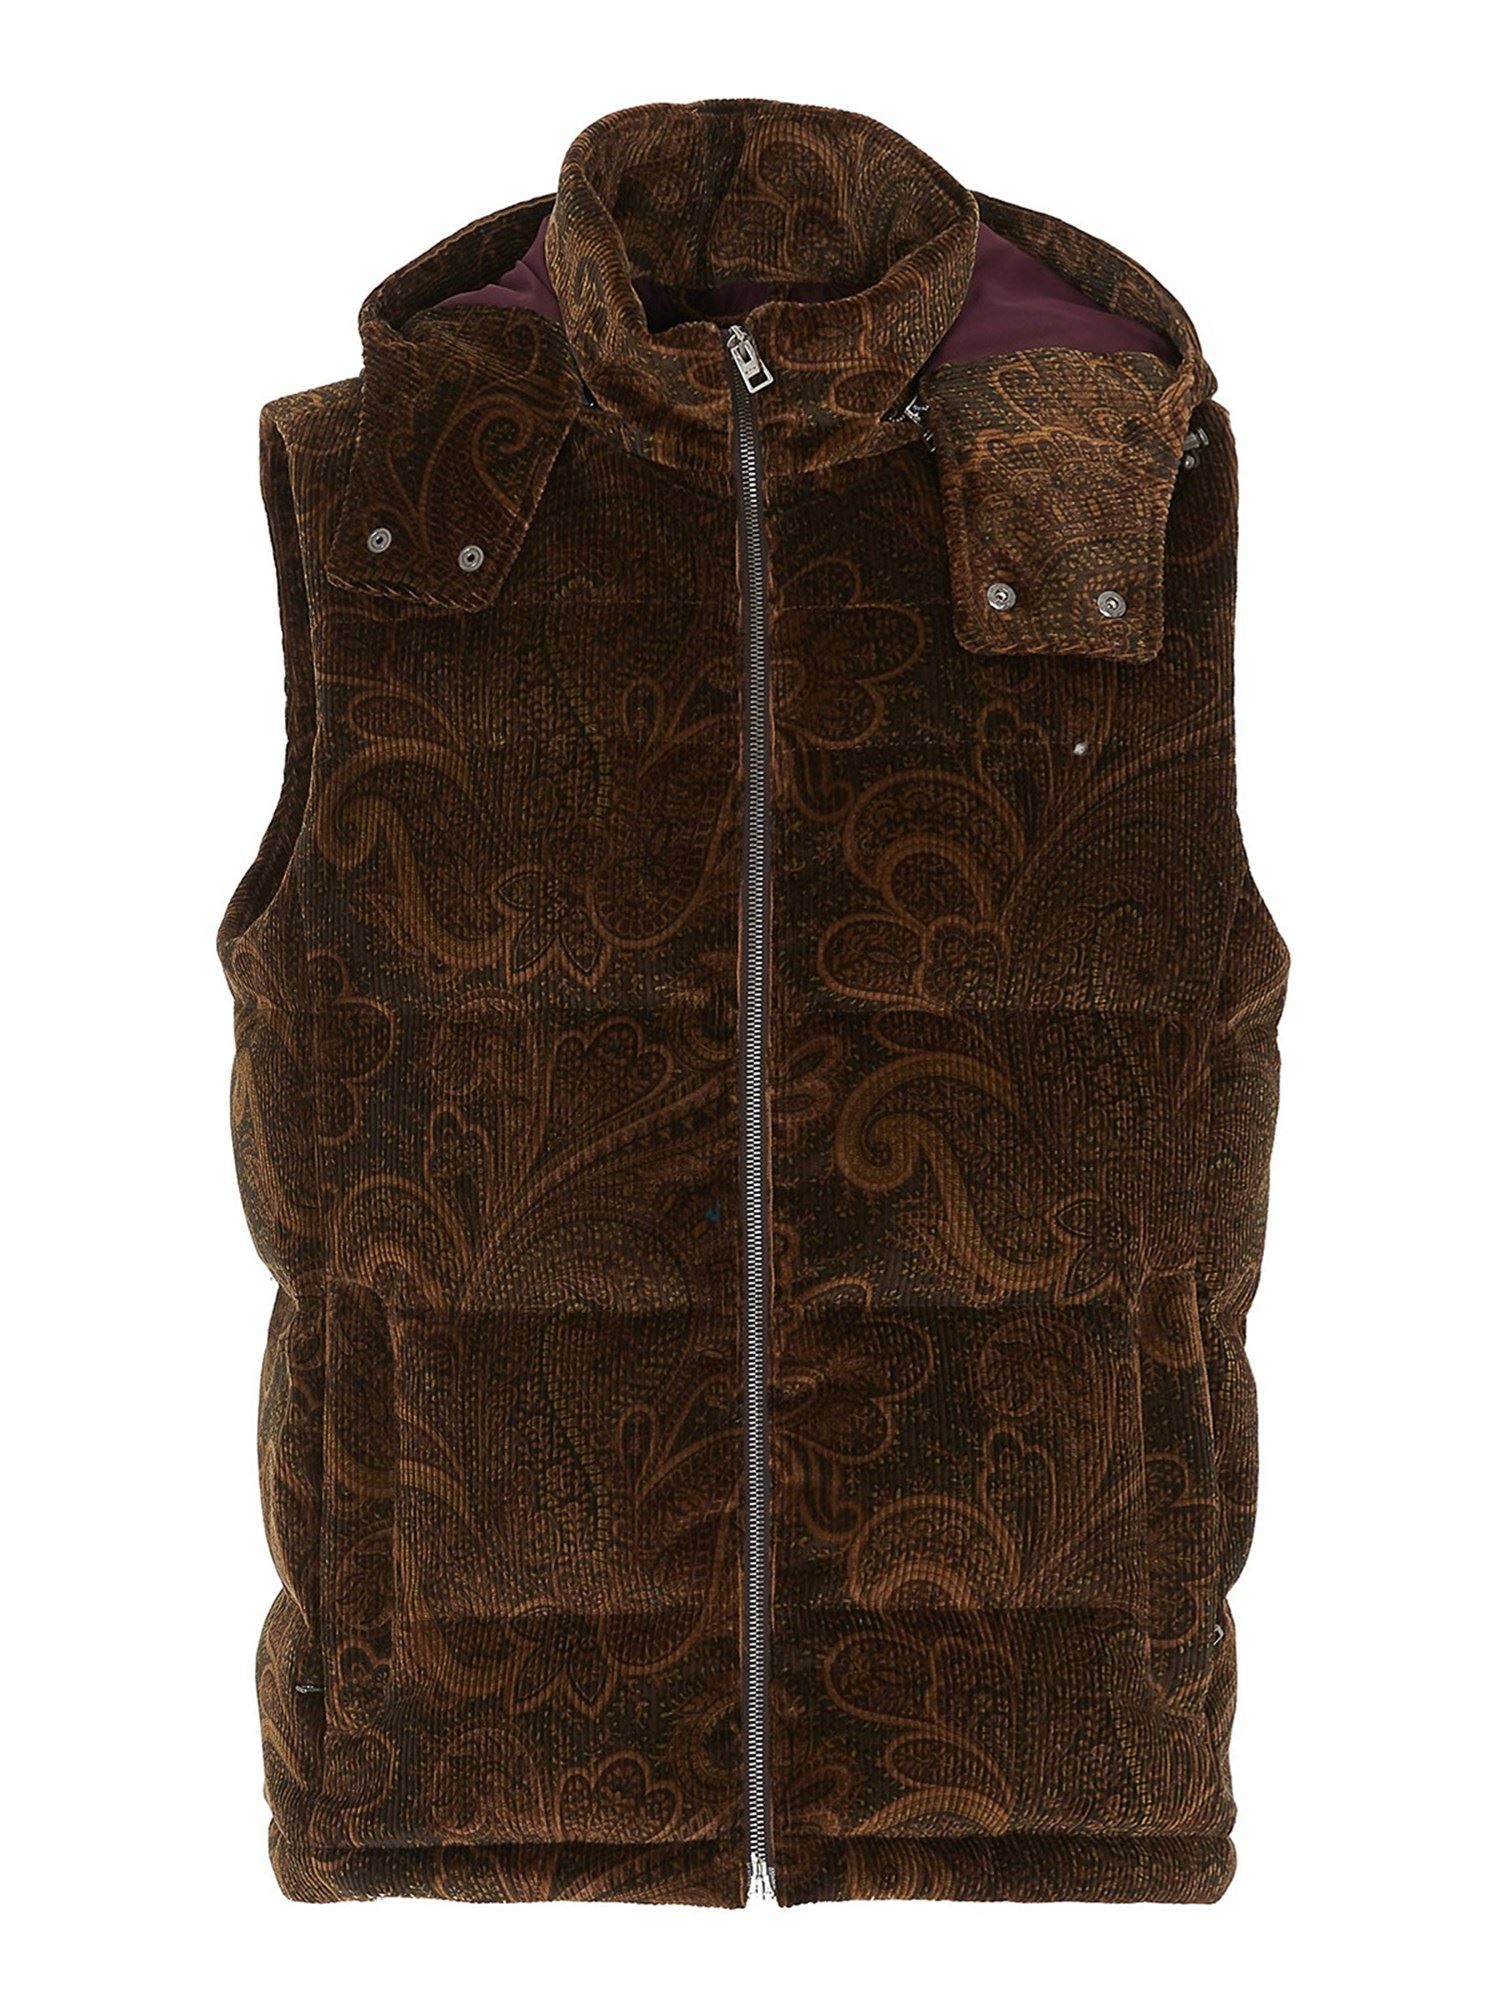 Etro Cottons HOODED CORDUROY WAISTCOAT IN BROWN